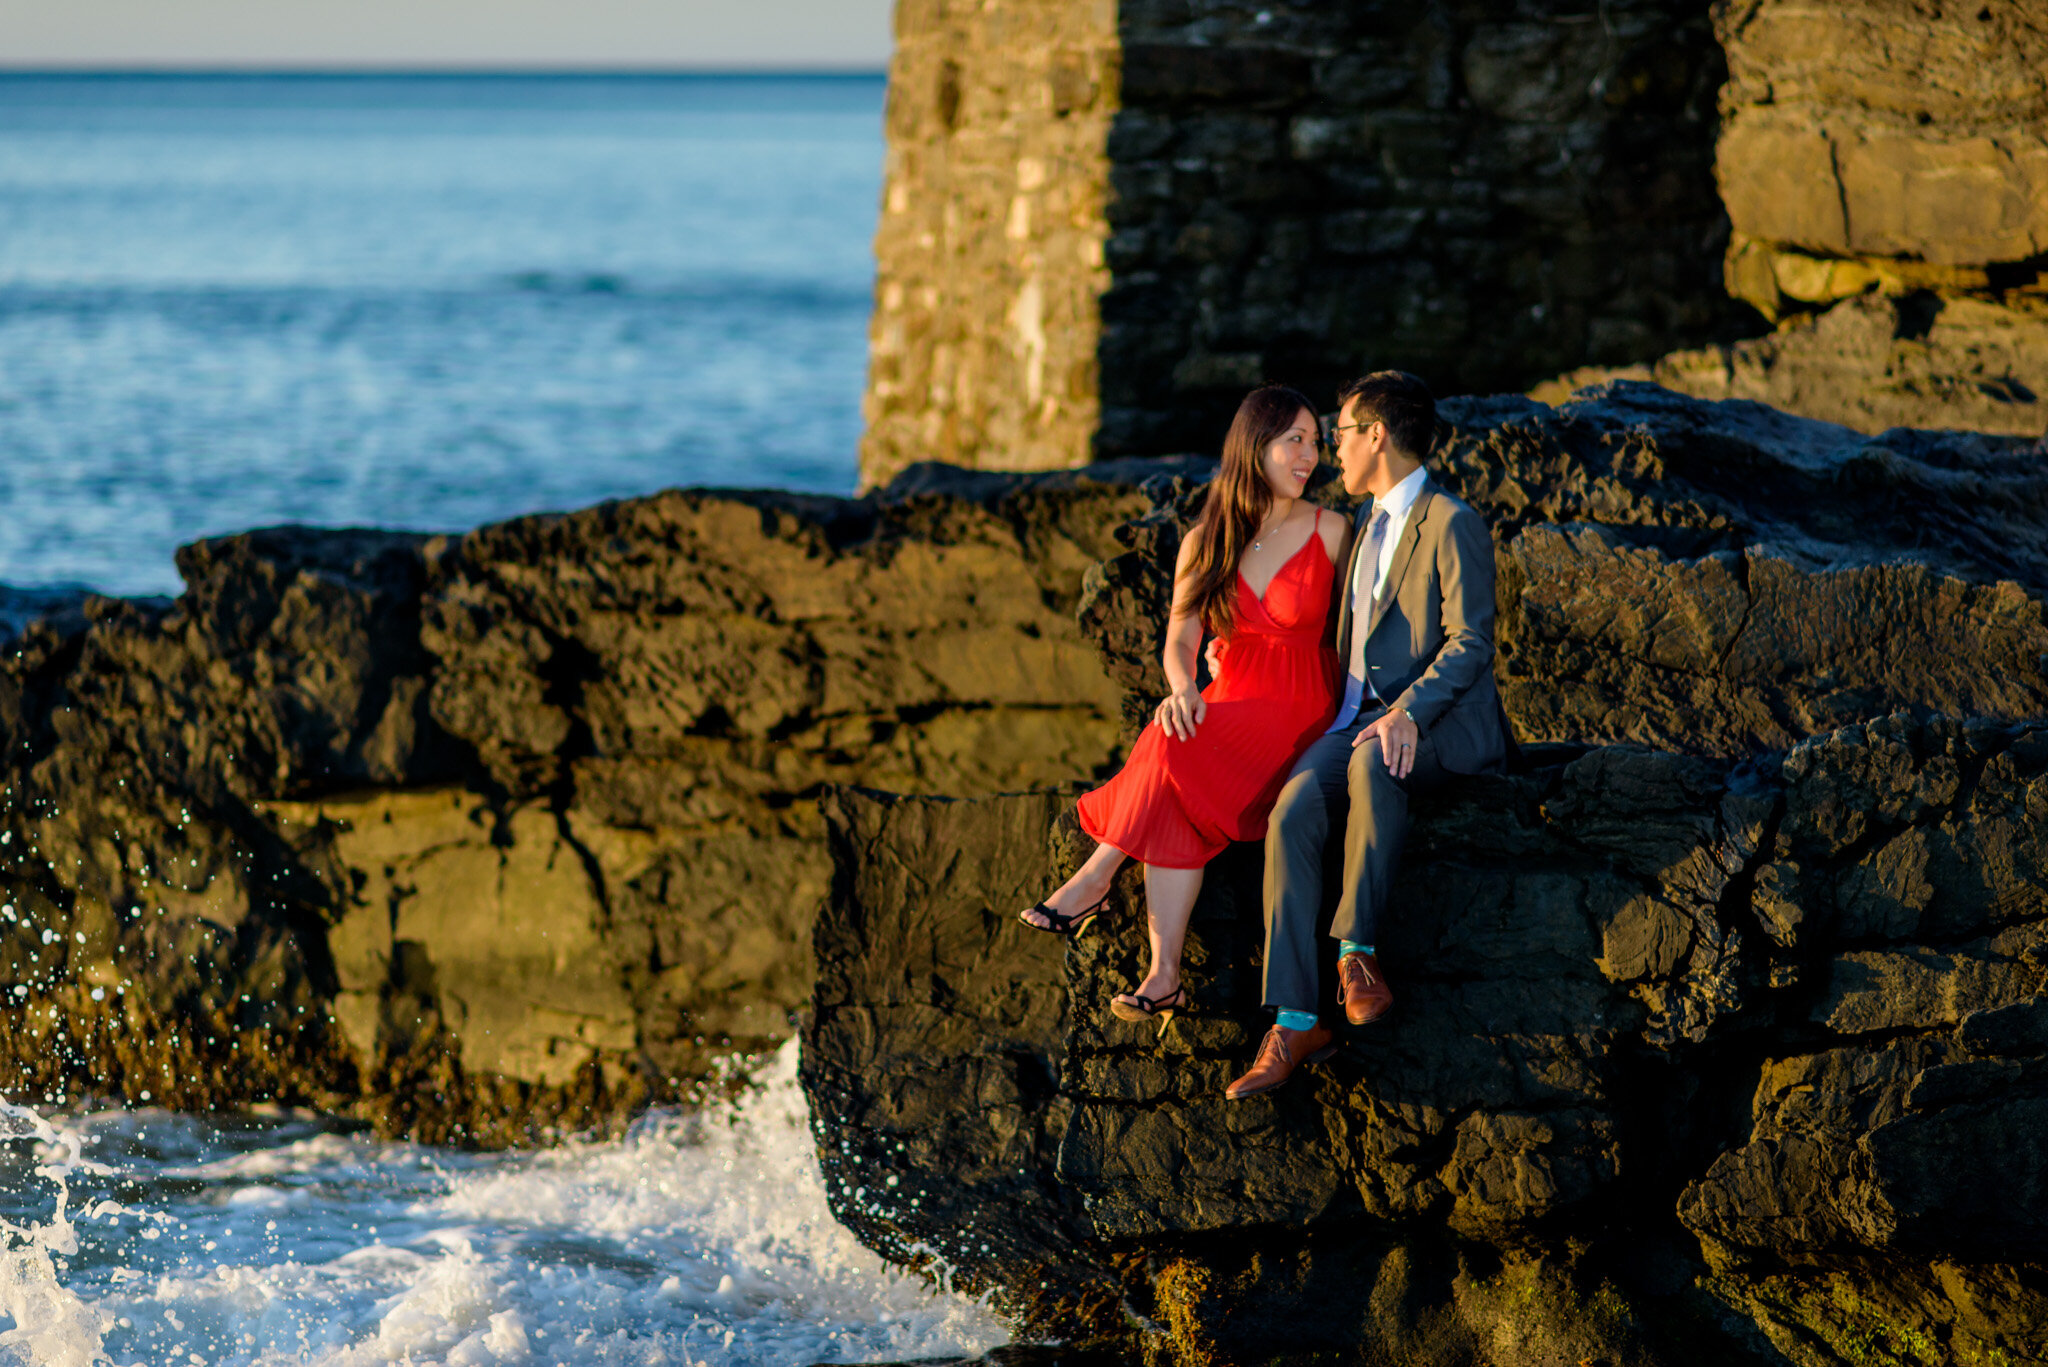 Man and Woman in a red dress at the sunrise